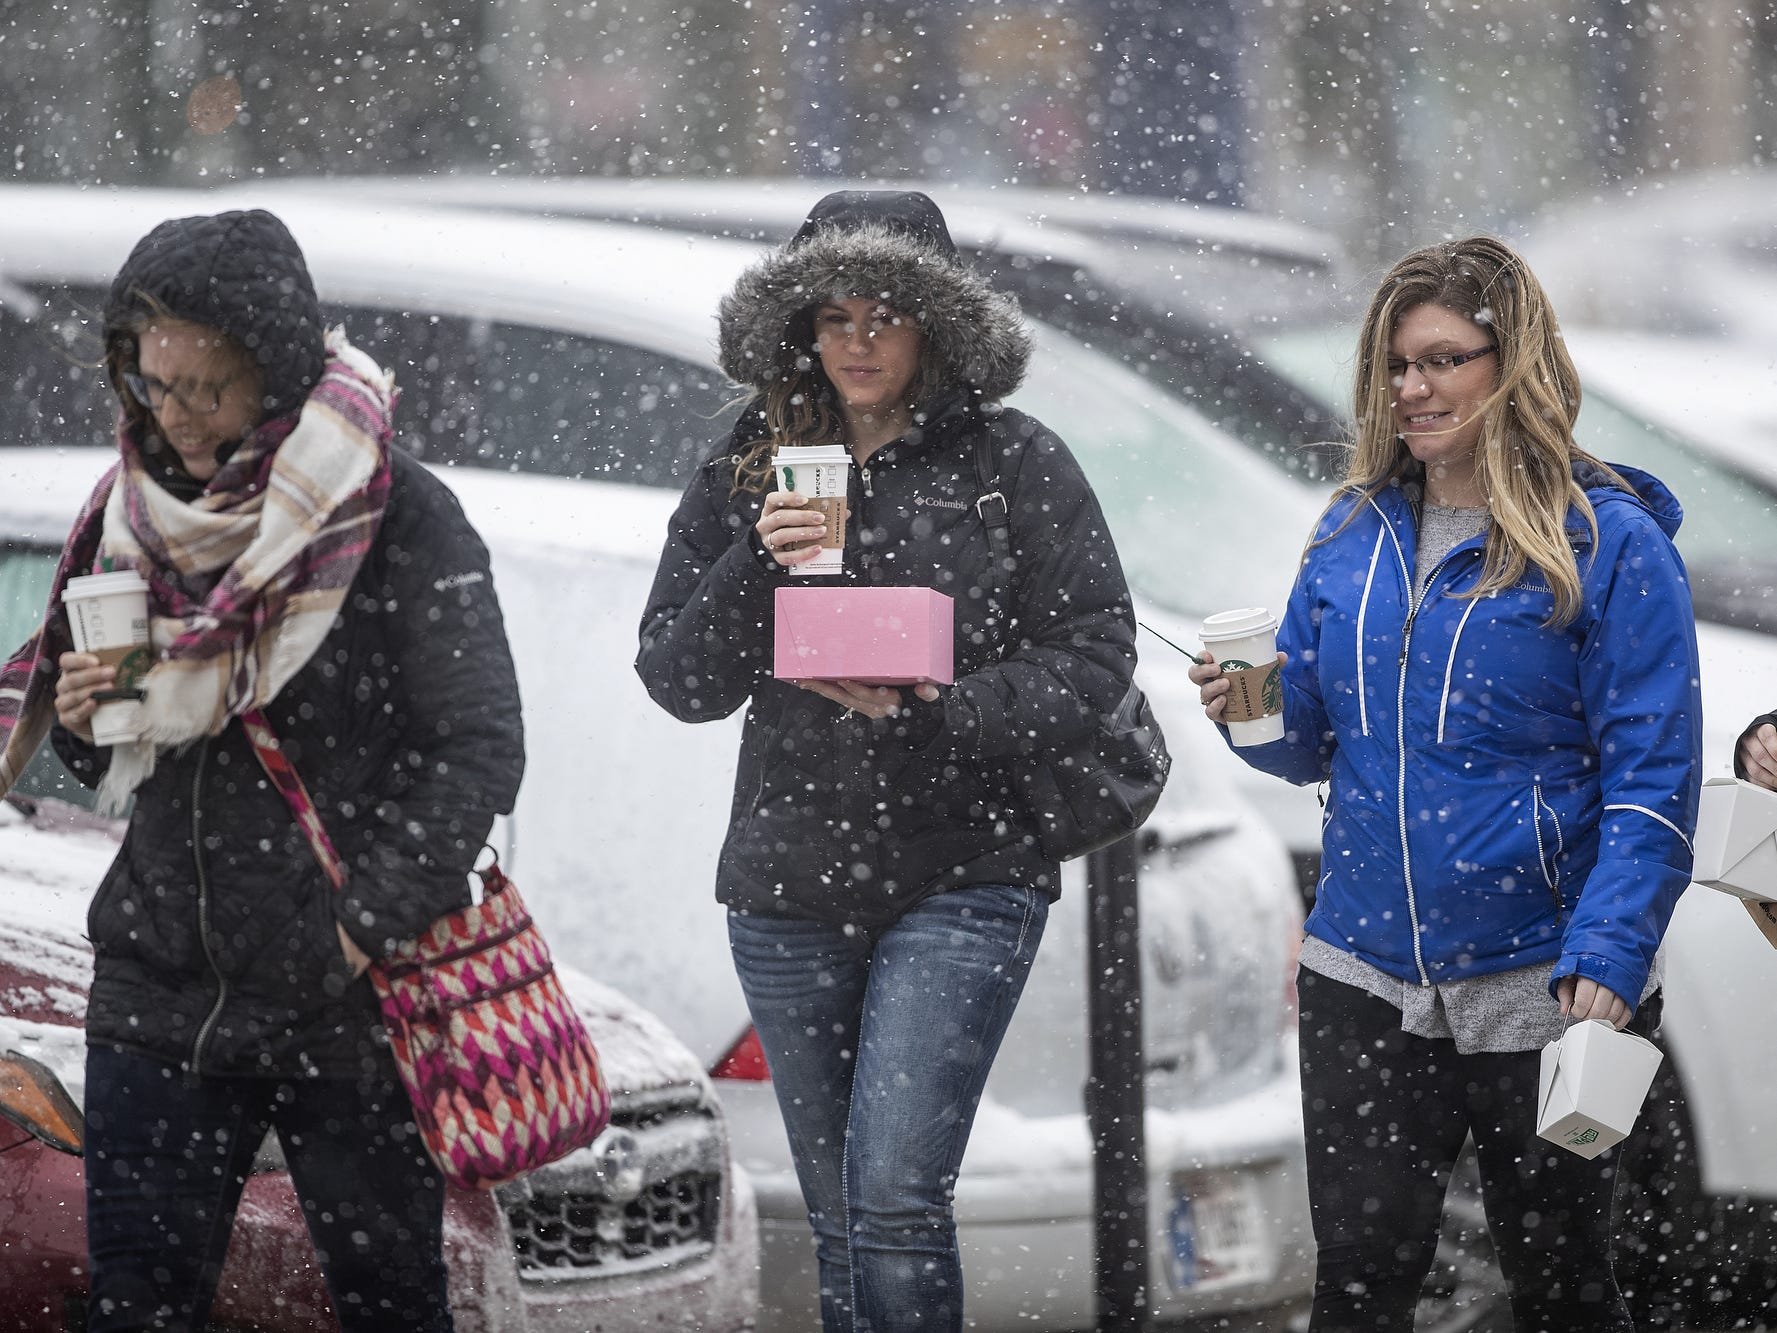 From left, Tory David, Alicia Anderson, Megan Briley and Lauren Foley enjoyed candle-making, dining and shopping on Mass Ave. during Sunday afternoon's snowfall in Indianapolis on March 3, 2019.